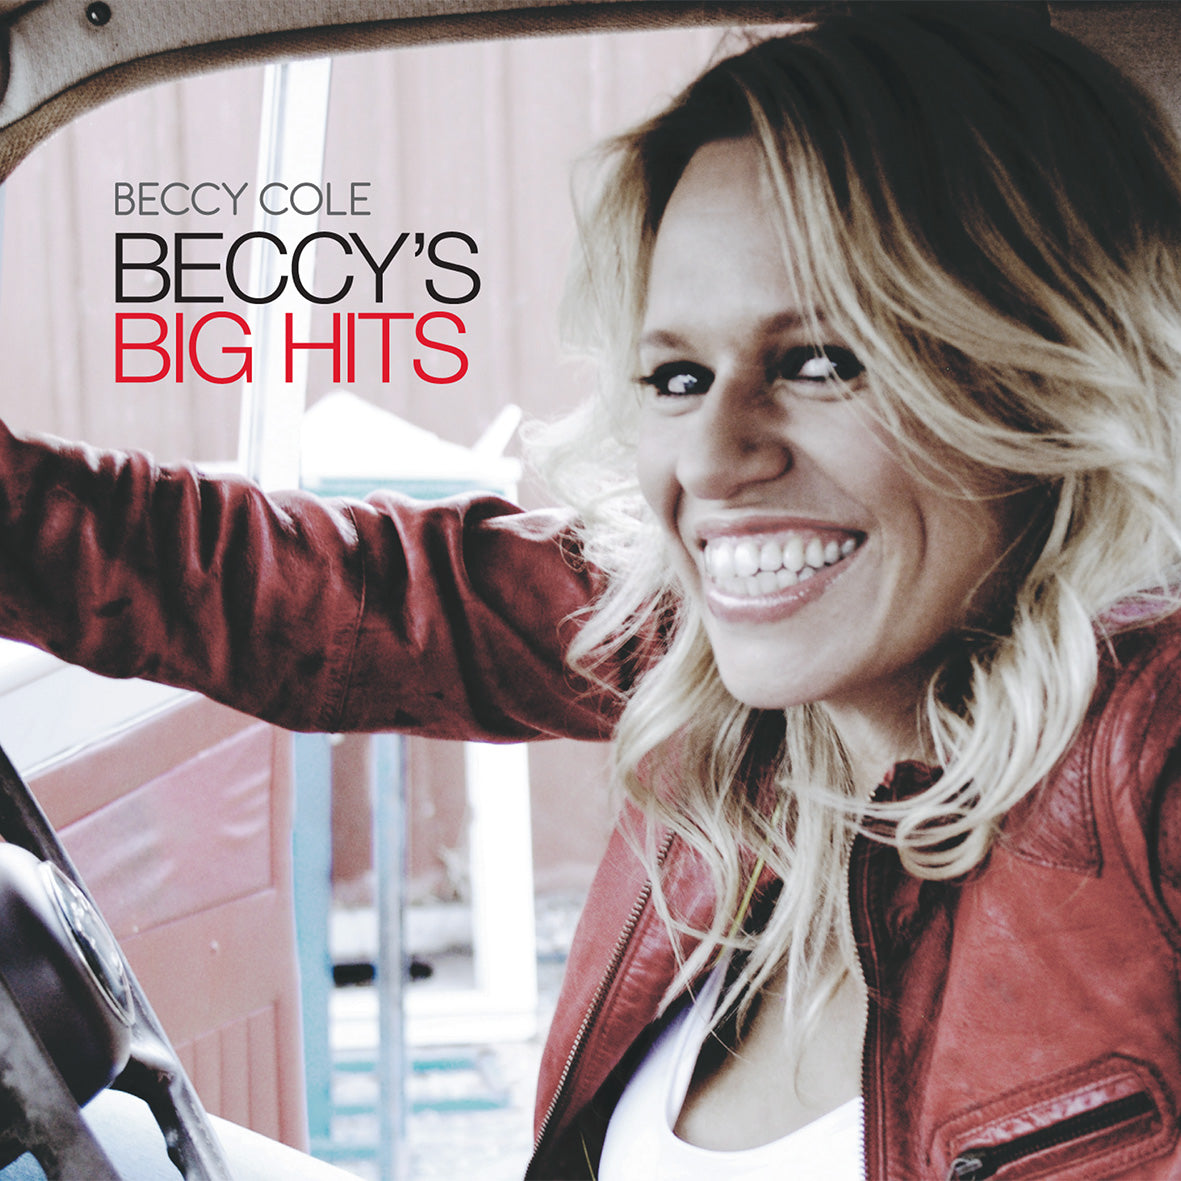 AMBITION004---BECCY-COLE---BECCY'S-BIG-HITS.jpg